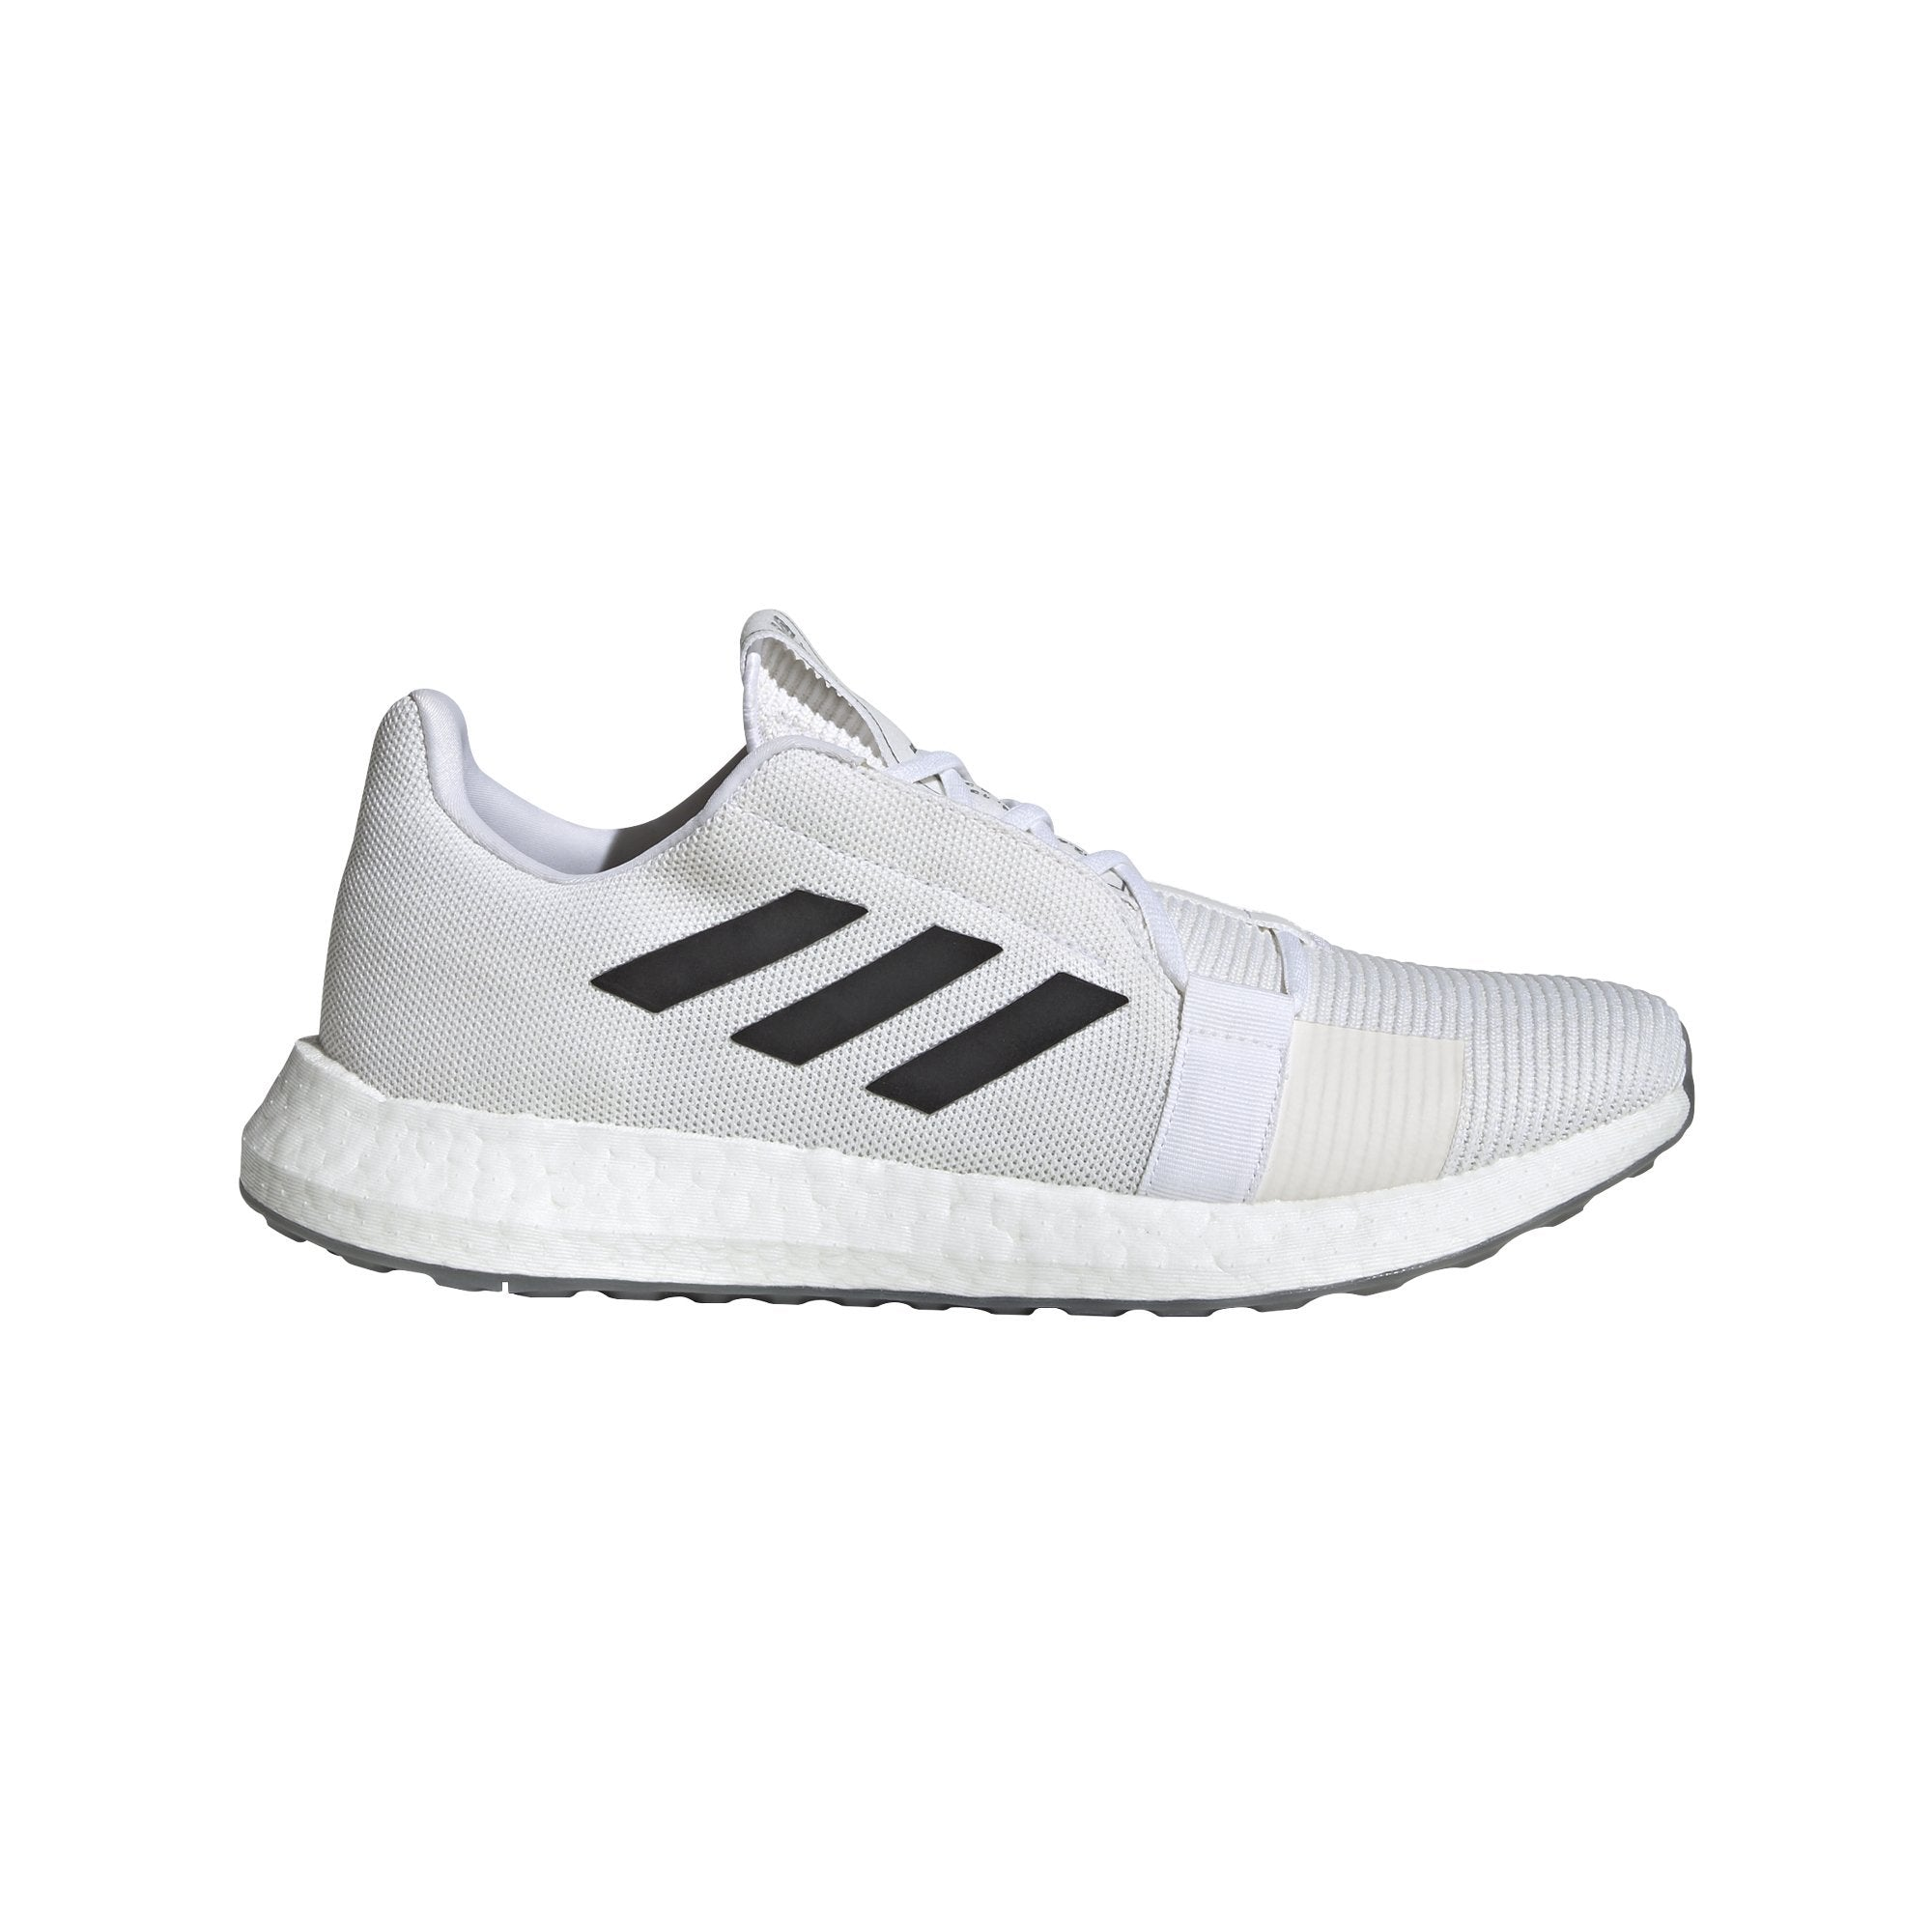 Adidas Men's Senseboost Go M - Ftwr White/Grey Six/Core White SP-Footwear-Mens Adidas